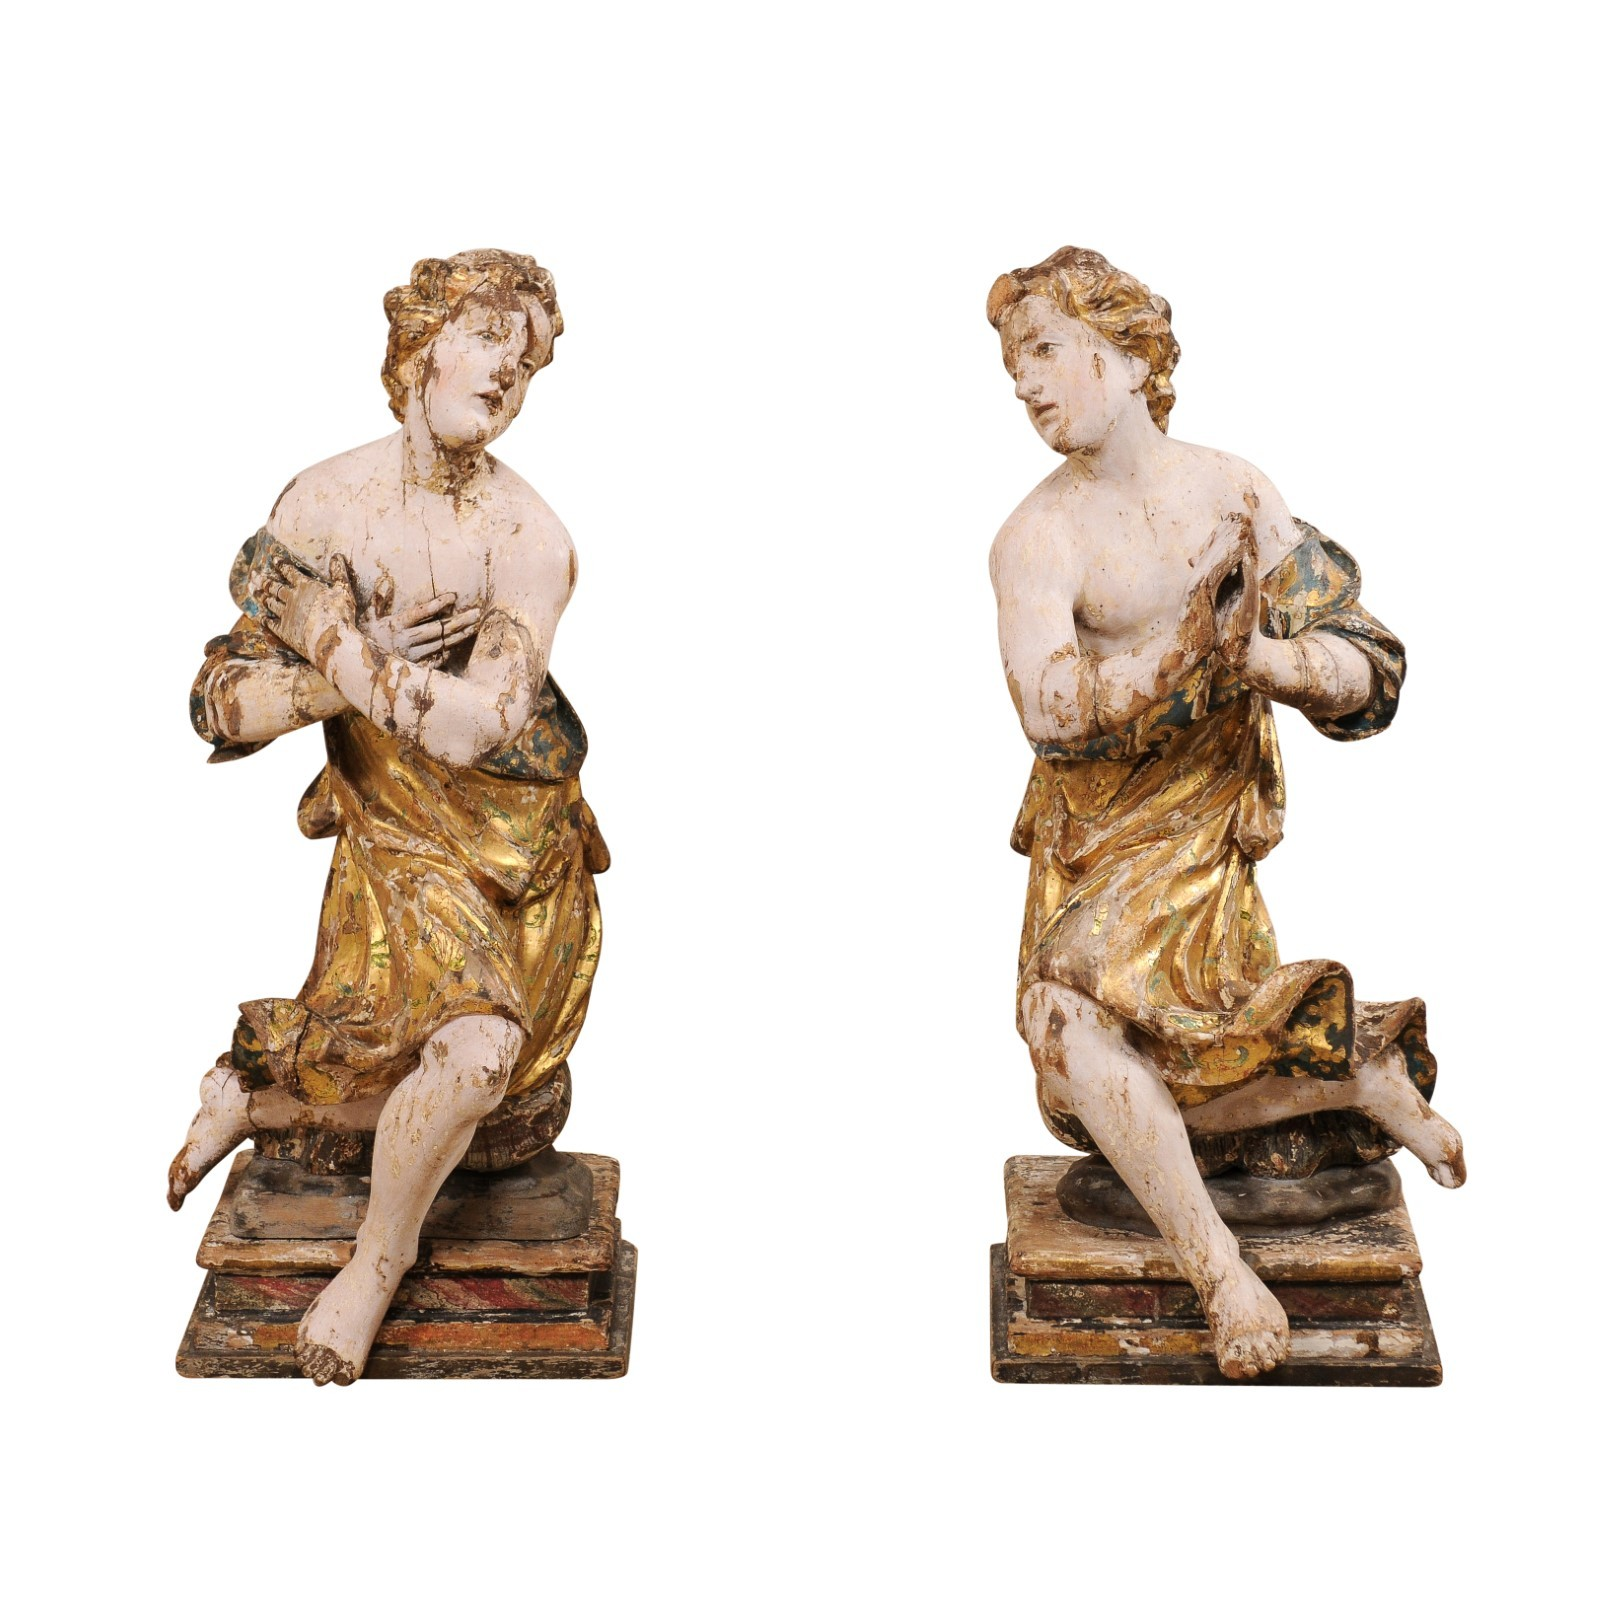 Pair Early 18th C. Italian Carved Figures